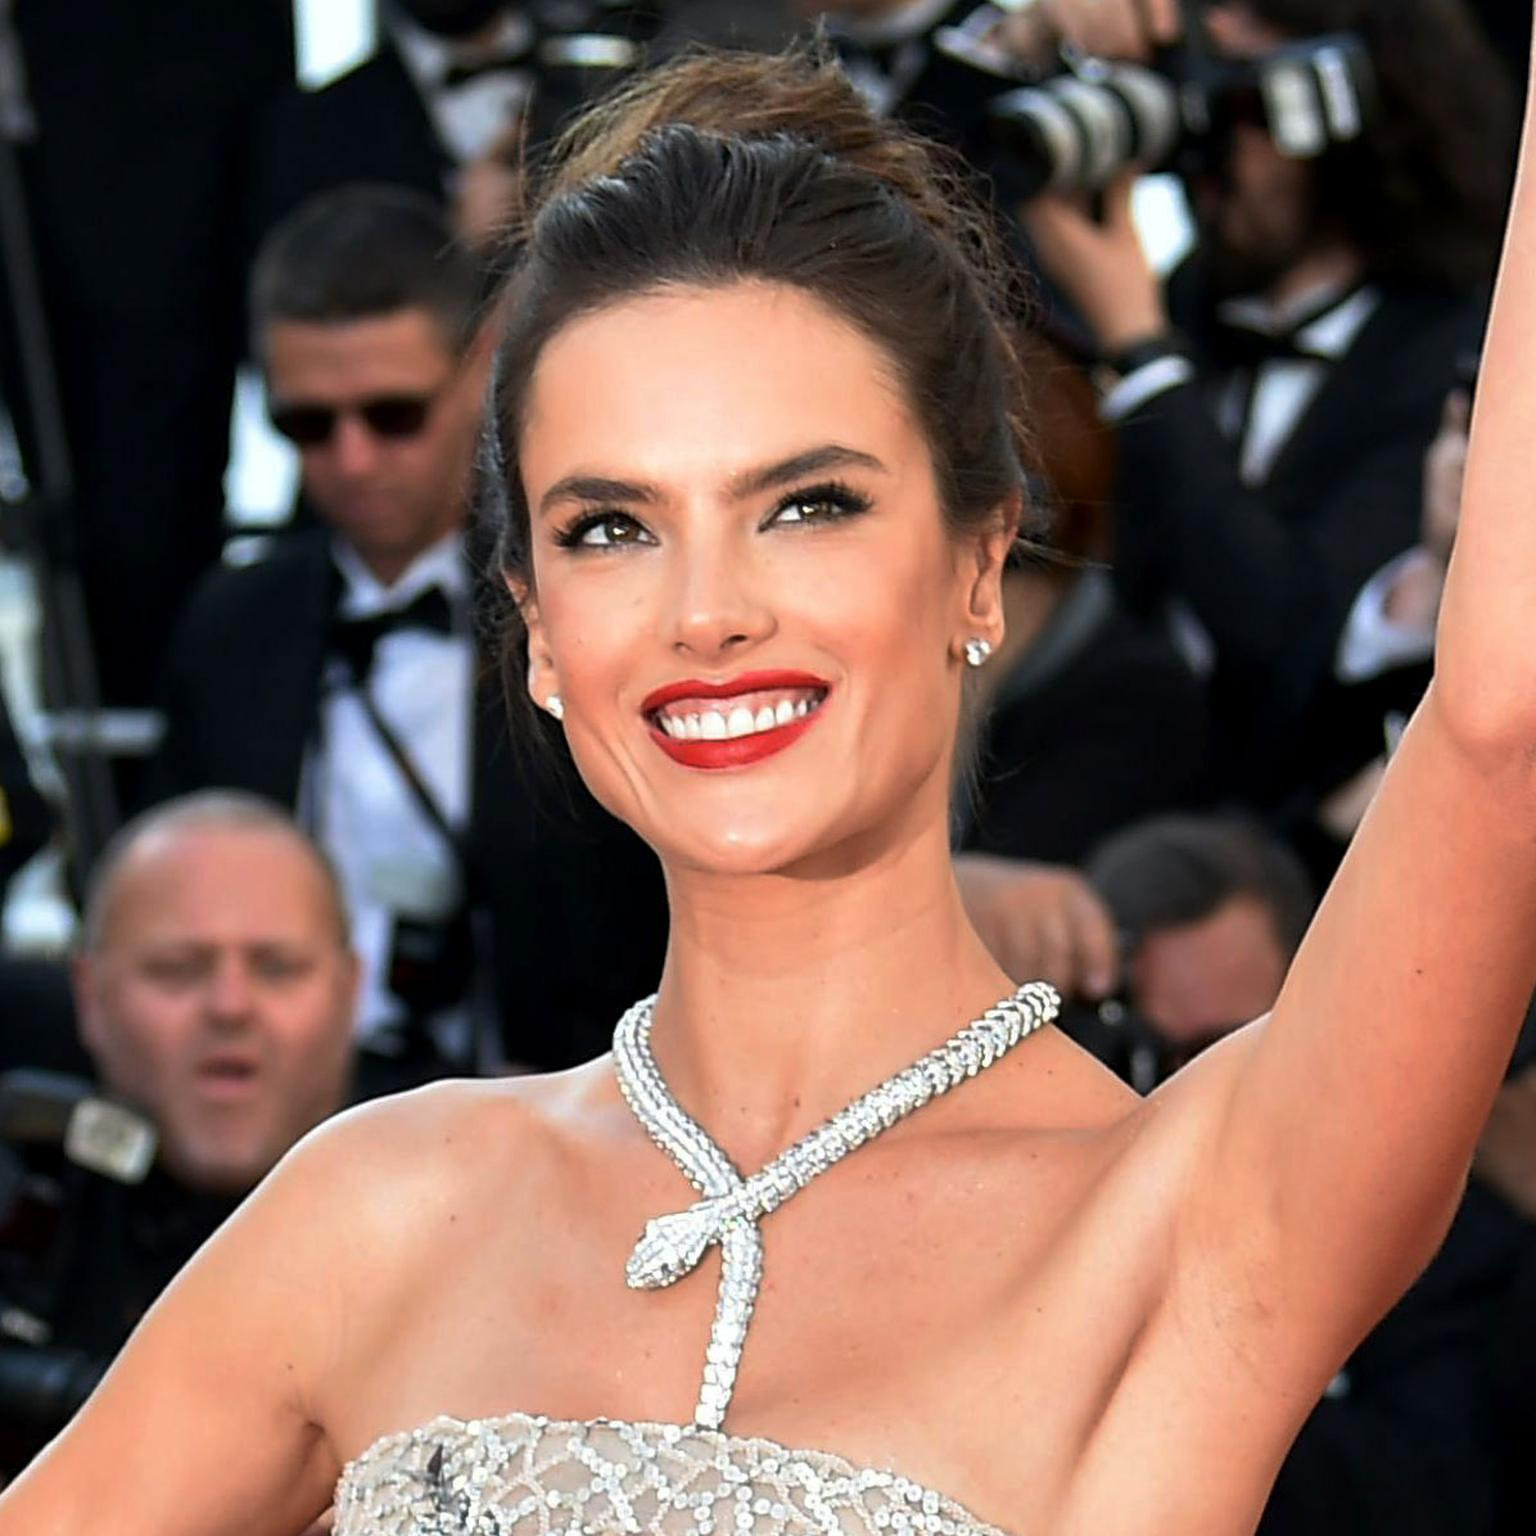 Cannes 2016 Day 10: Alessandra Ambrosio in Bulgari